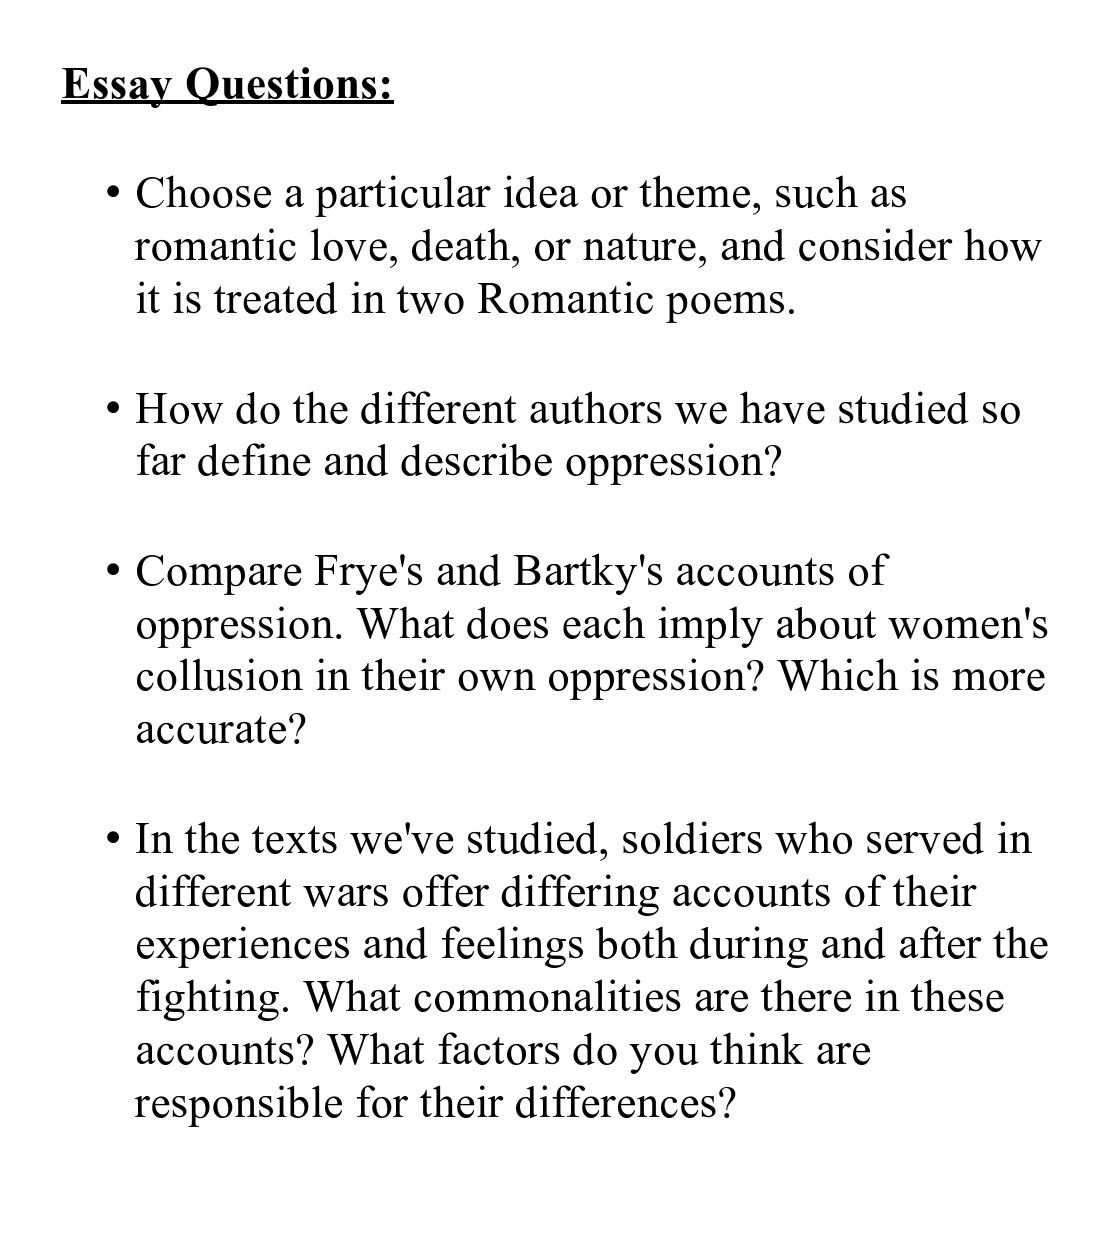 007 Essay Example Prompts Questions Best Topics For Lord Of The Flies High School Seniors Argumentative Frankenstein Full